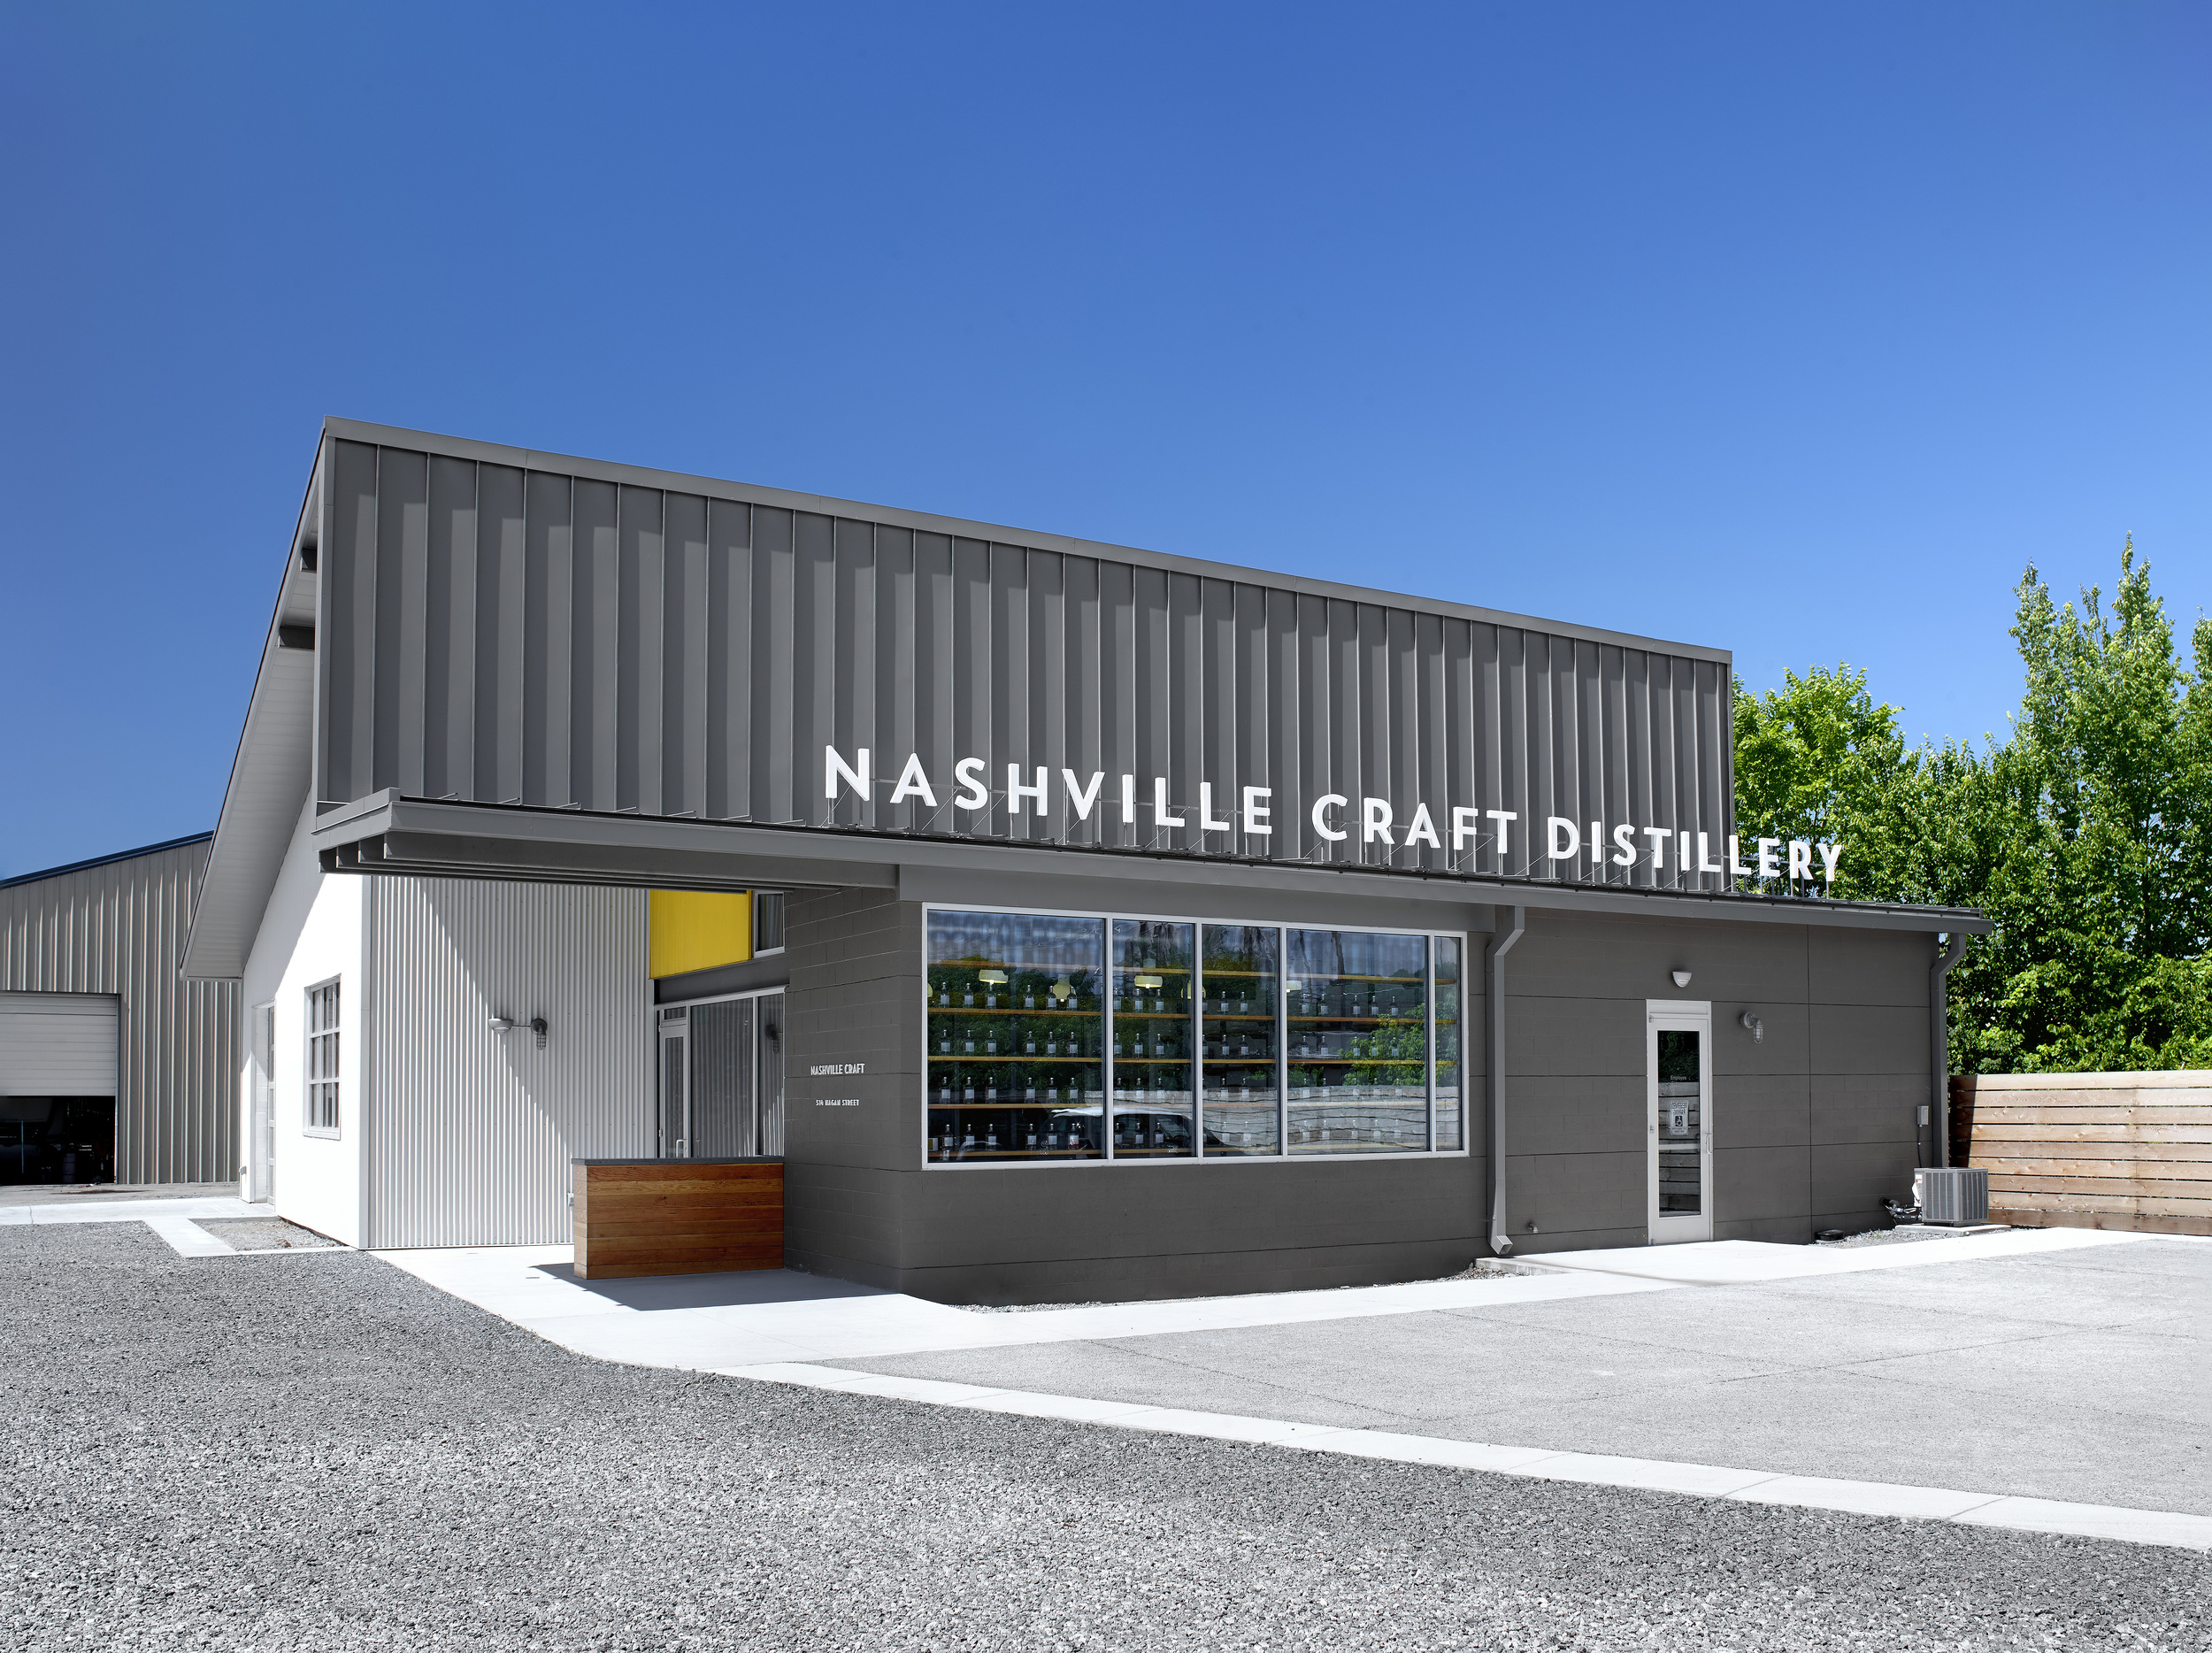 Nashville Craft Distillery Shot 1 LR.jpg